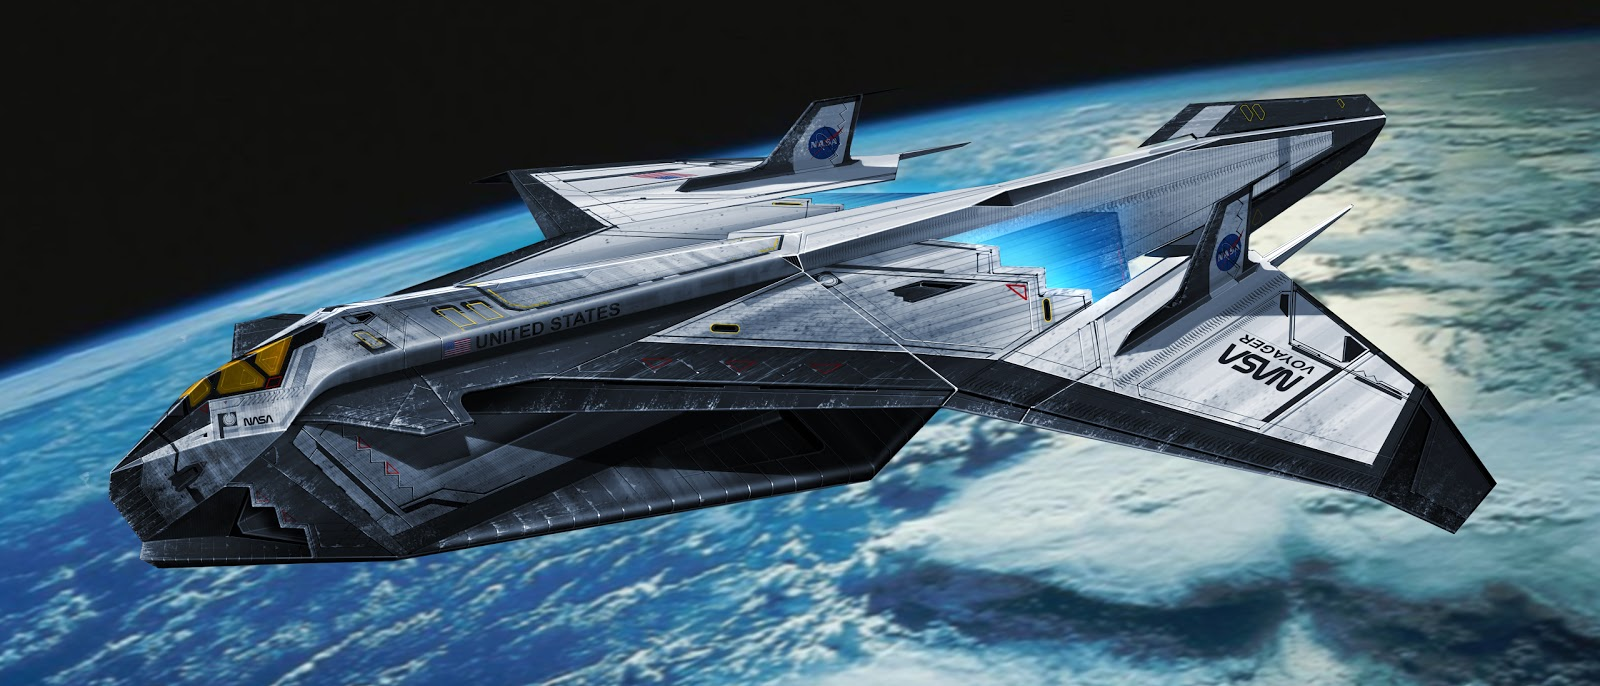 future space shuttle concepts - photo #19